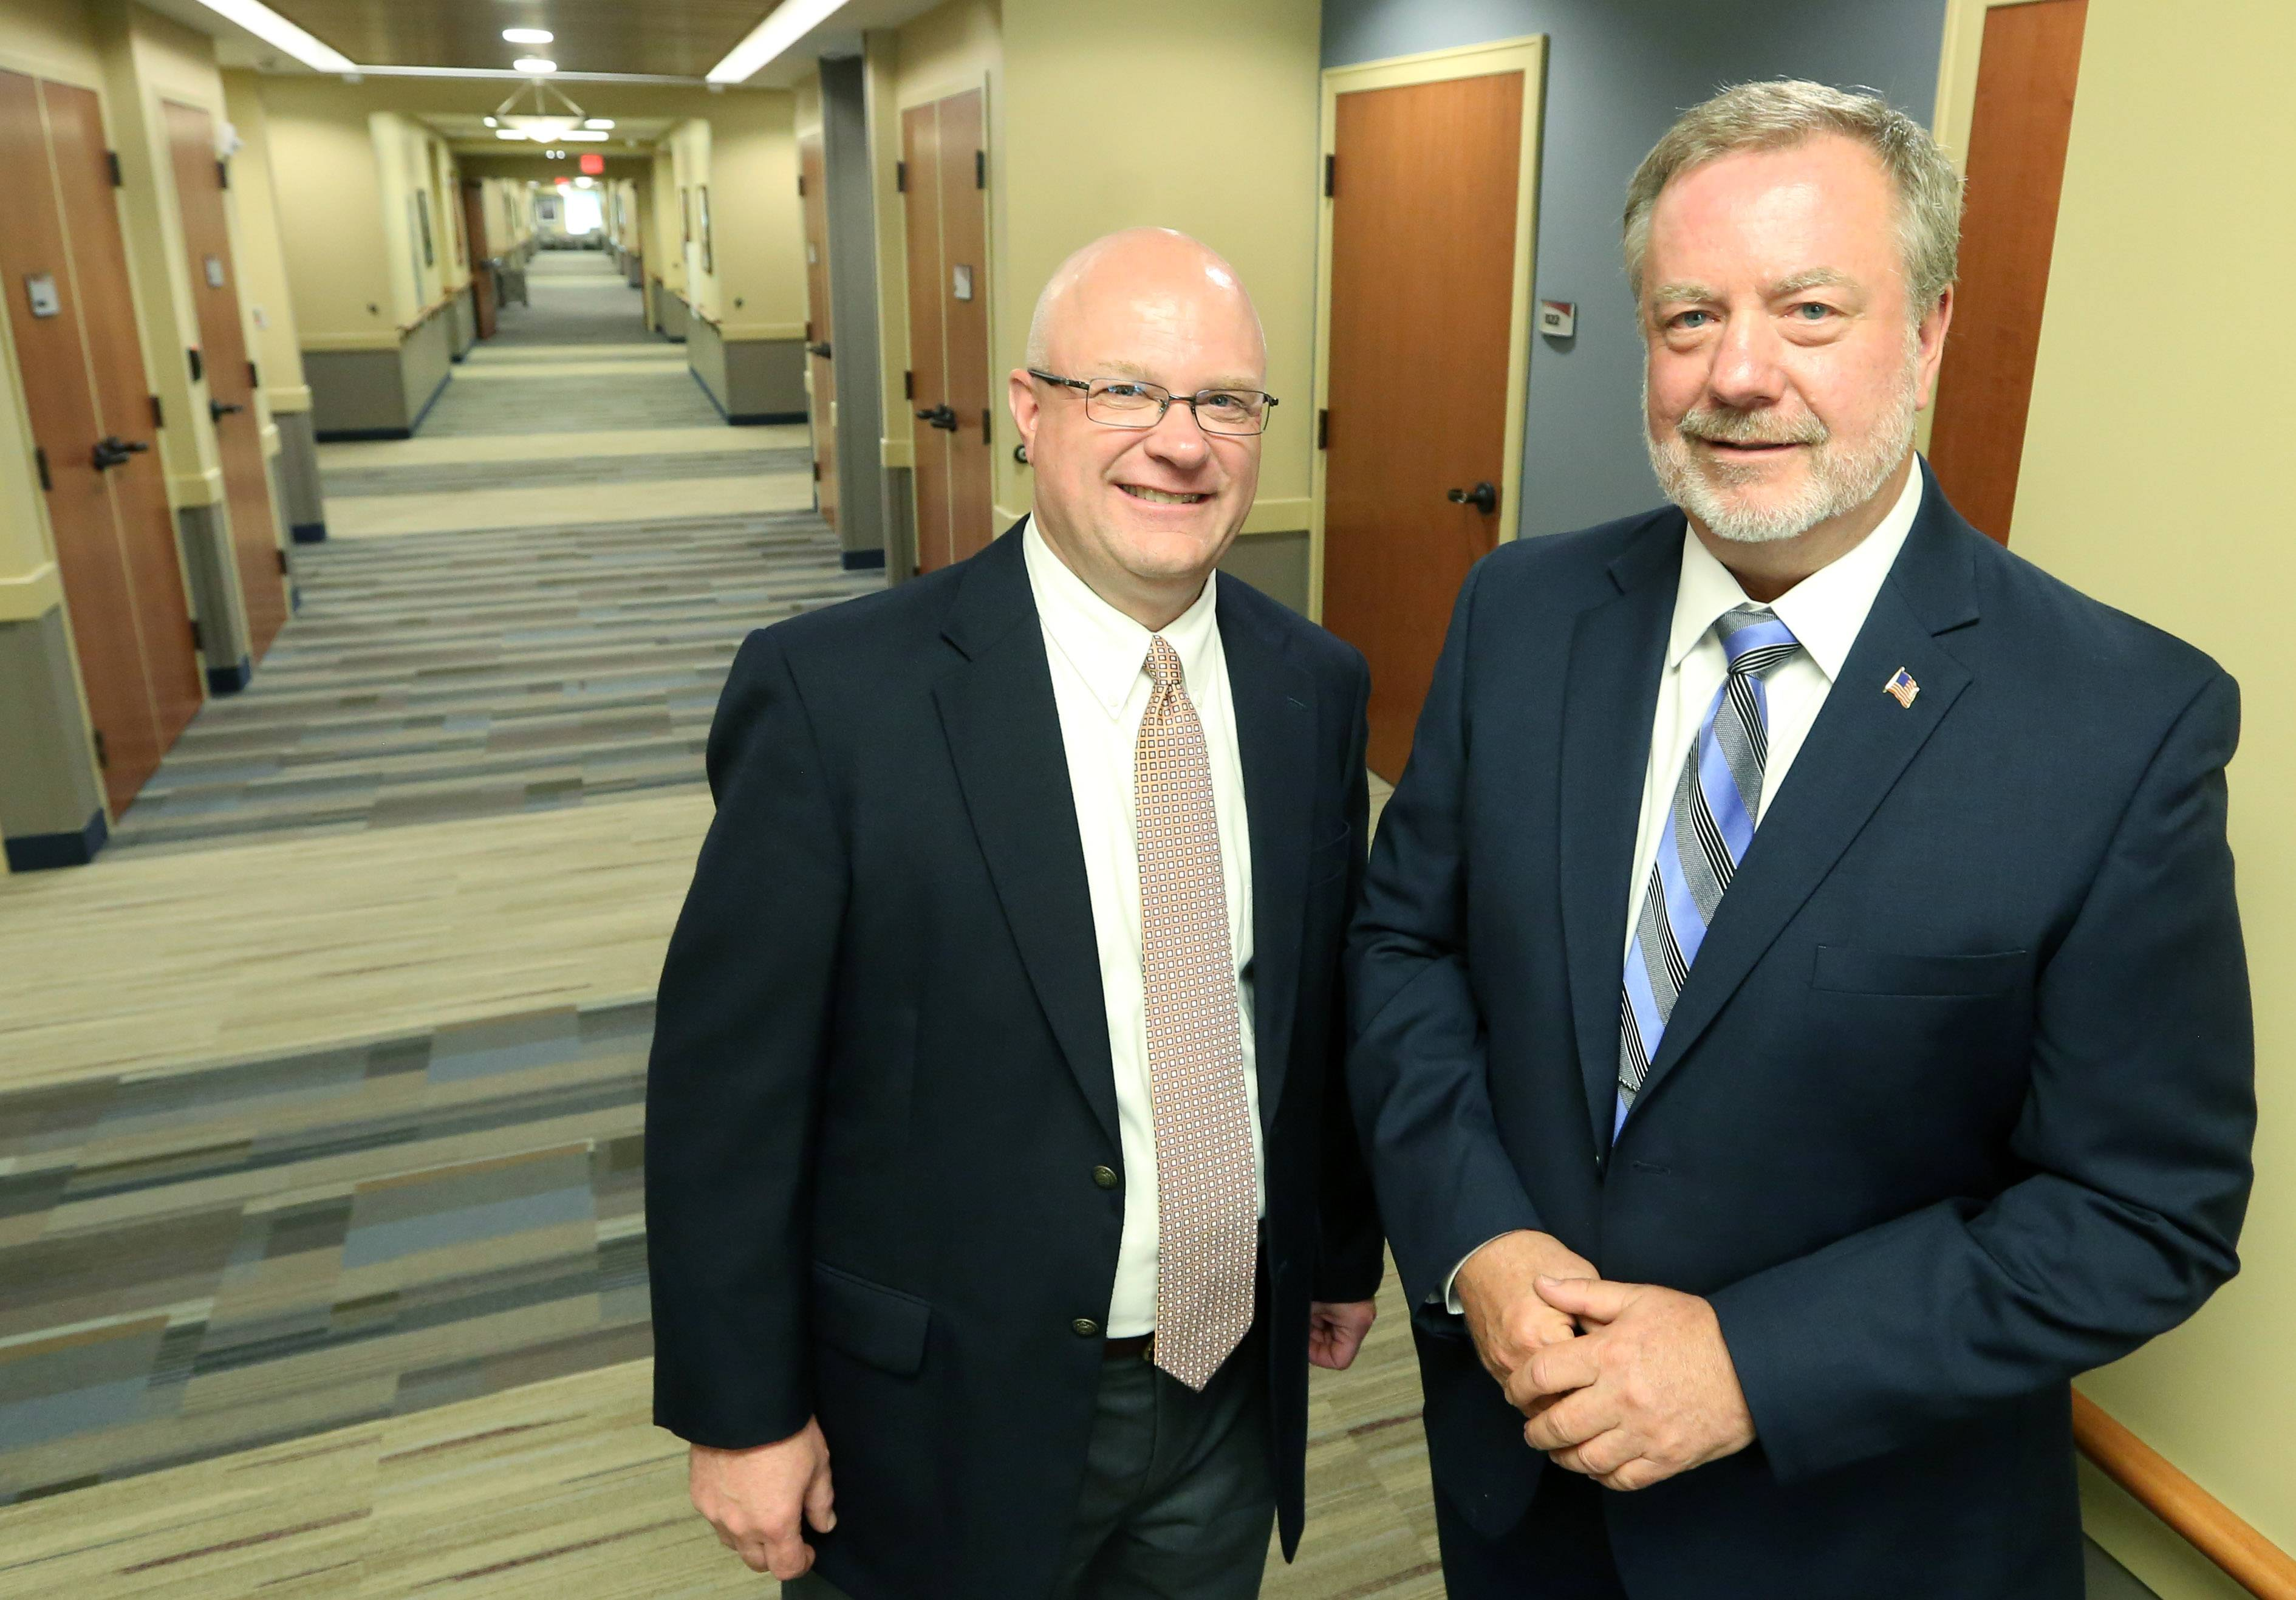 Phil Hemmer, administrator for Lutheran Home, left, and Roger Paulsberg, president and CEO of Lutheran Life Communities, in the patient room hallway at Lutheran Home's new MyRehab Center in Arlington Heights.